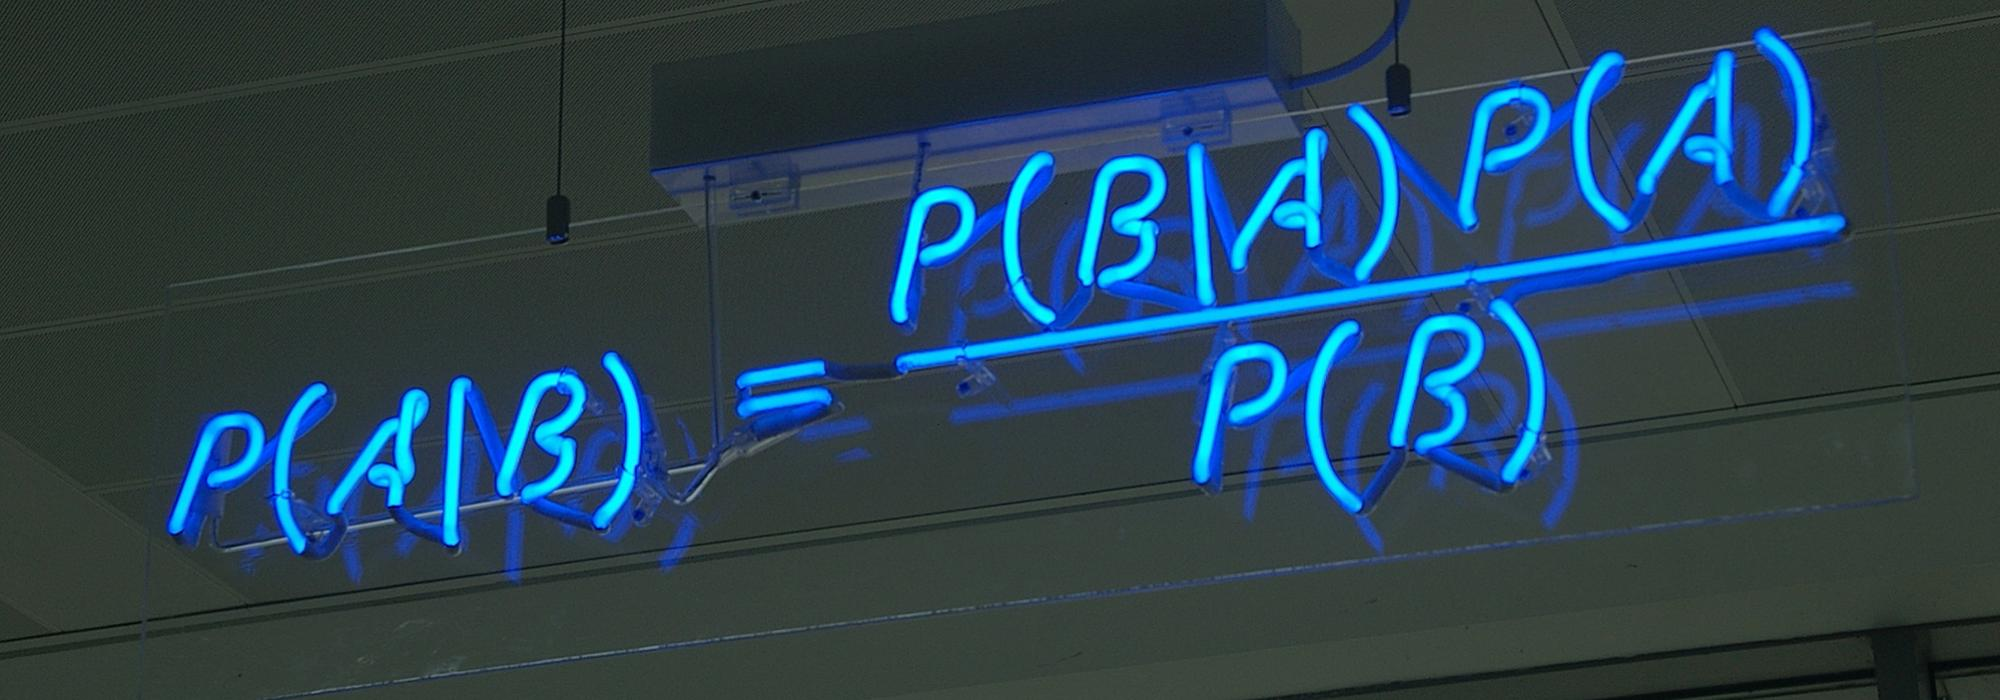 Bayes's Theorem in neon at Autonomy in Cambridge, UK - Photo: © Matt Buck - www.flickr.com/mattbuck007 - CC BY-SA 2.0 licence